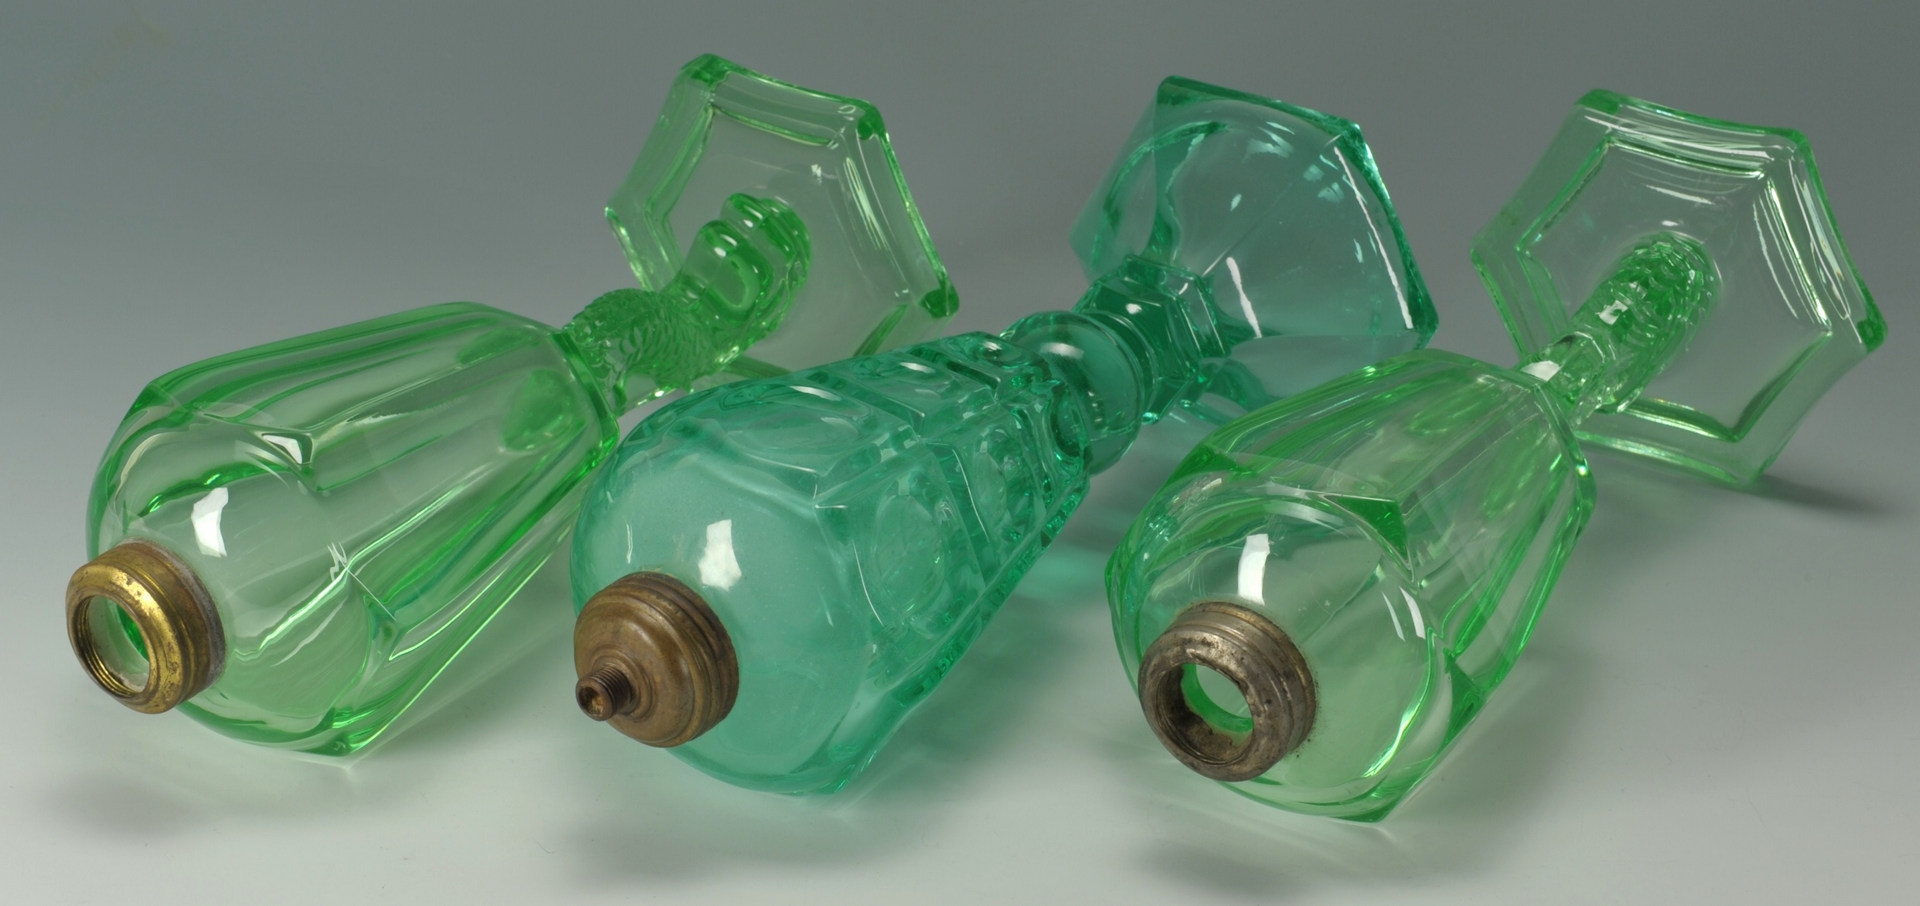 Lot 280: 3 Green Pressed Glass Oil Lamps